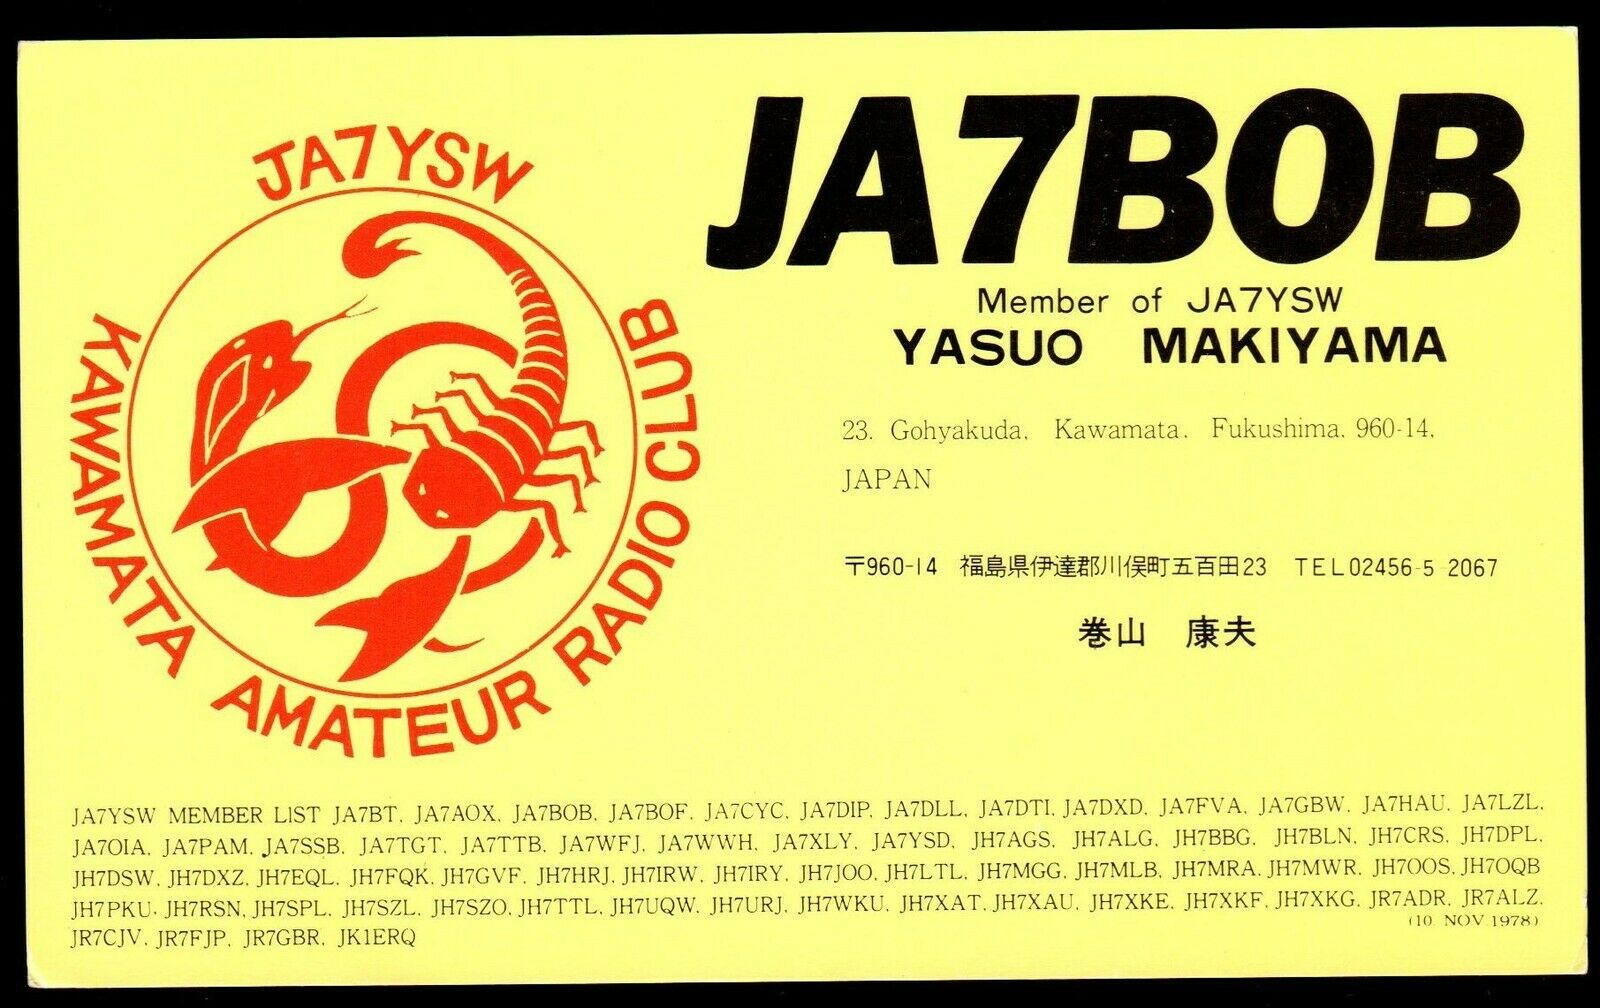 QSL QSO RADIO CARD JA7BOB,Yasuo Makiyama,Kawamata Club, Japan (Q3031)